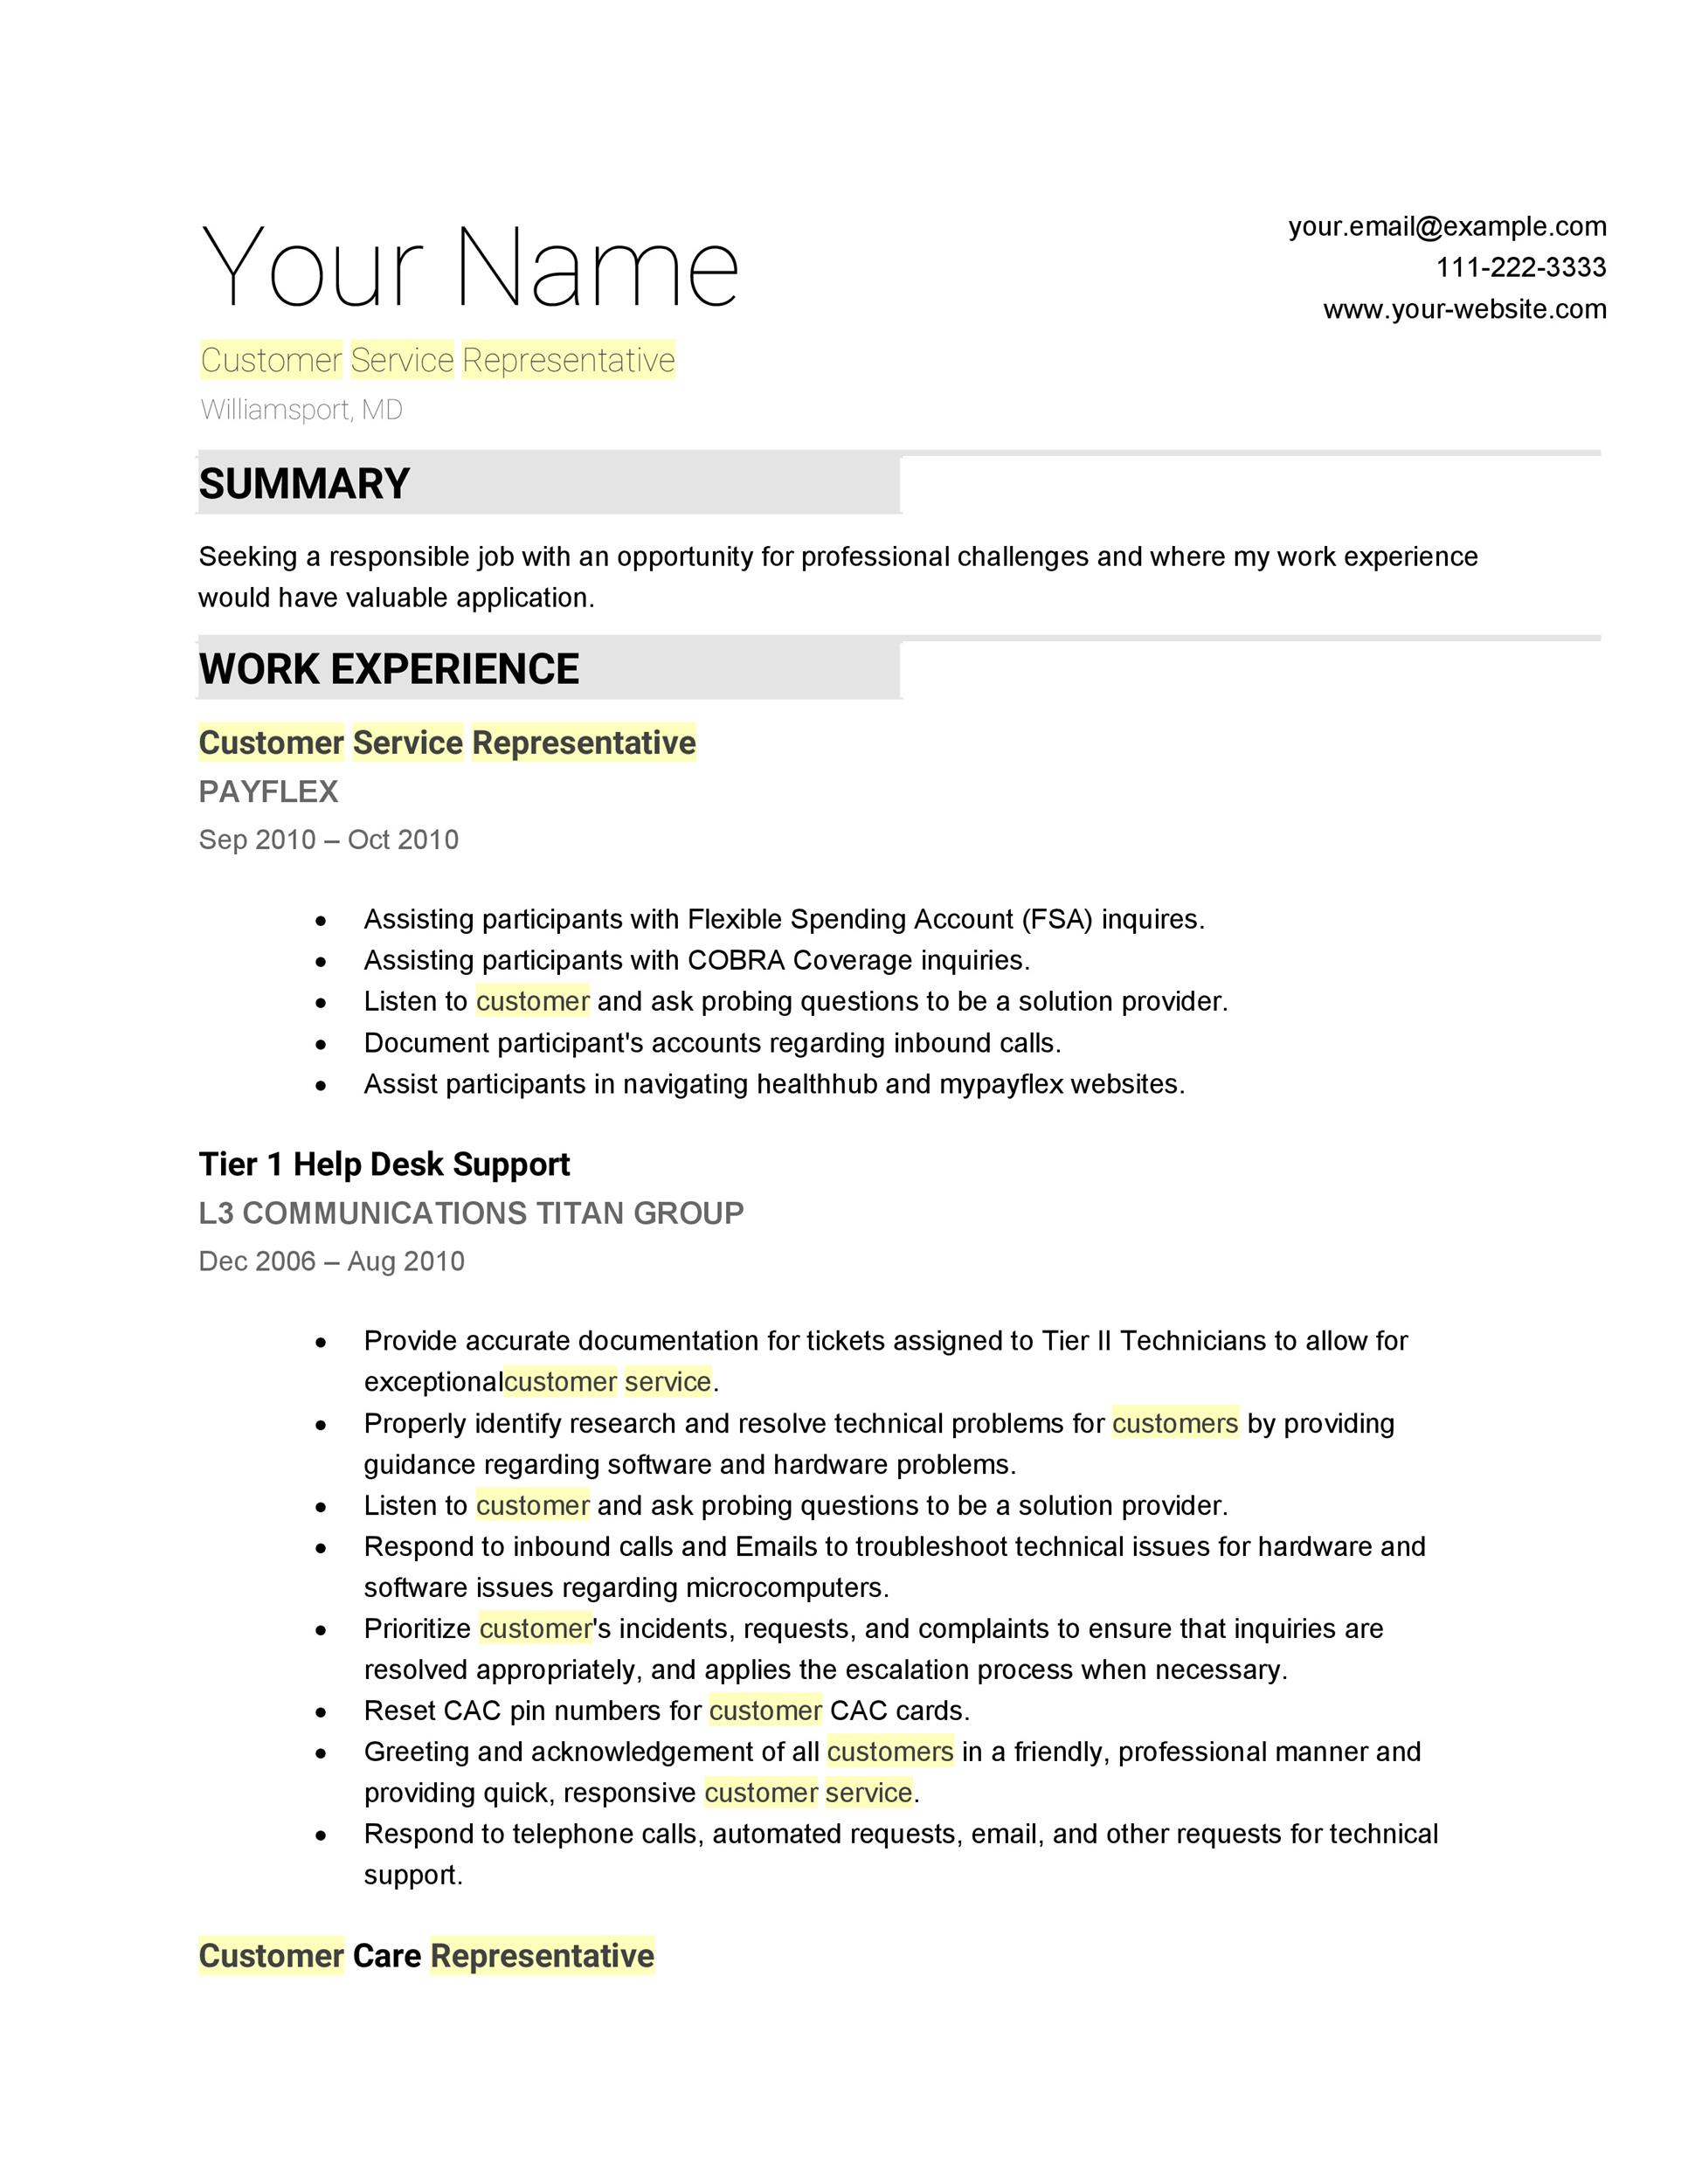 Customer Service Resume Templates  Sample Resume For Customer Service Rep